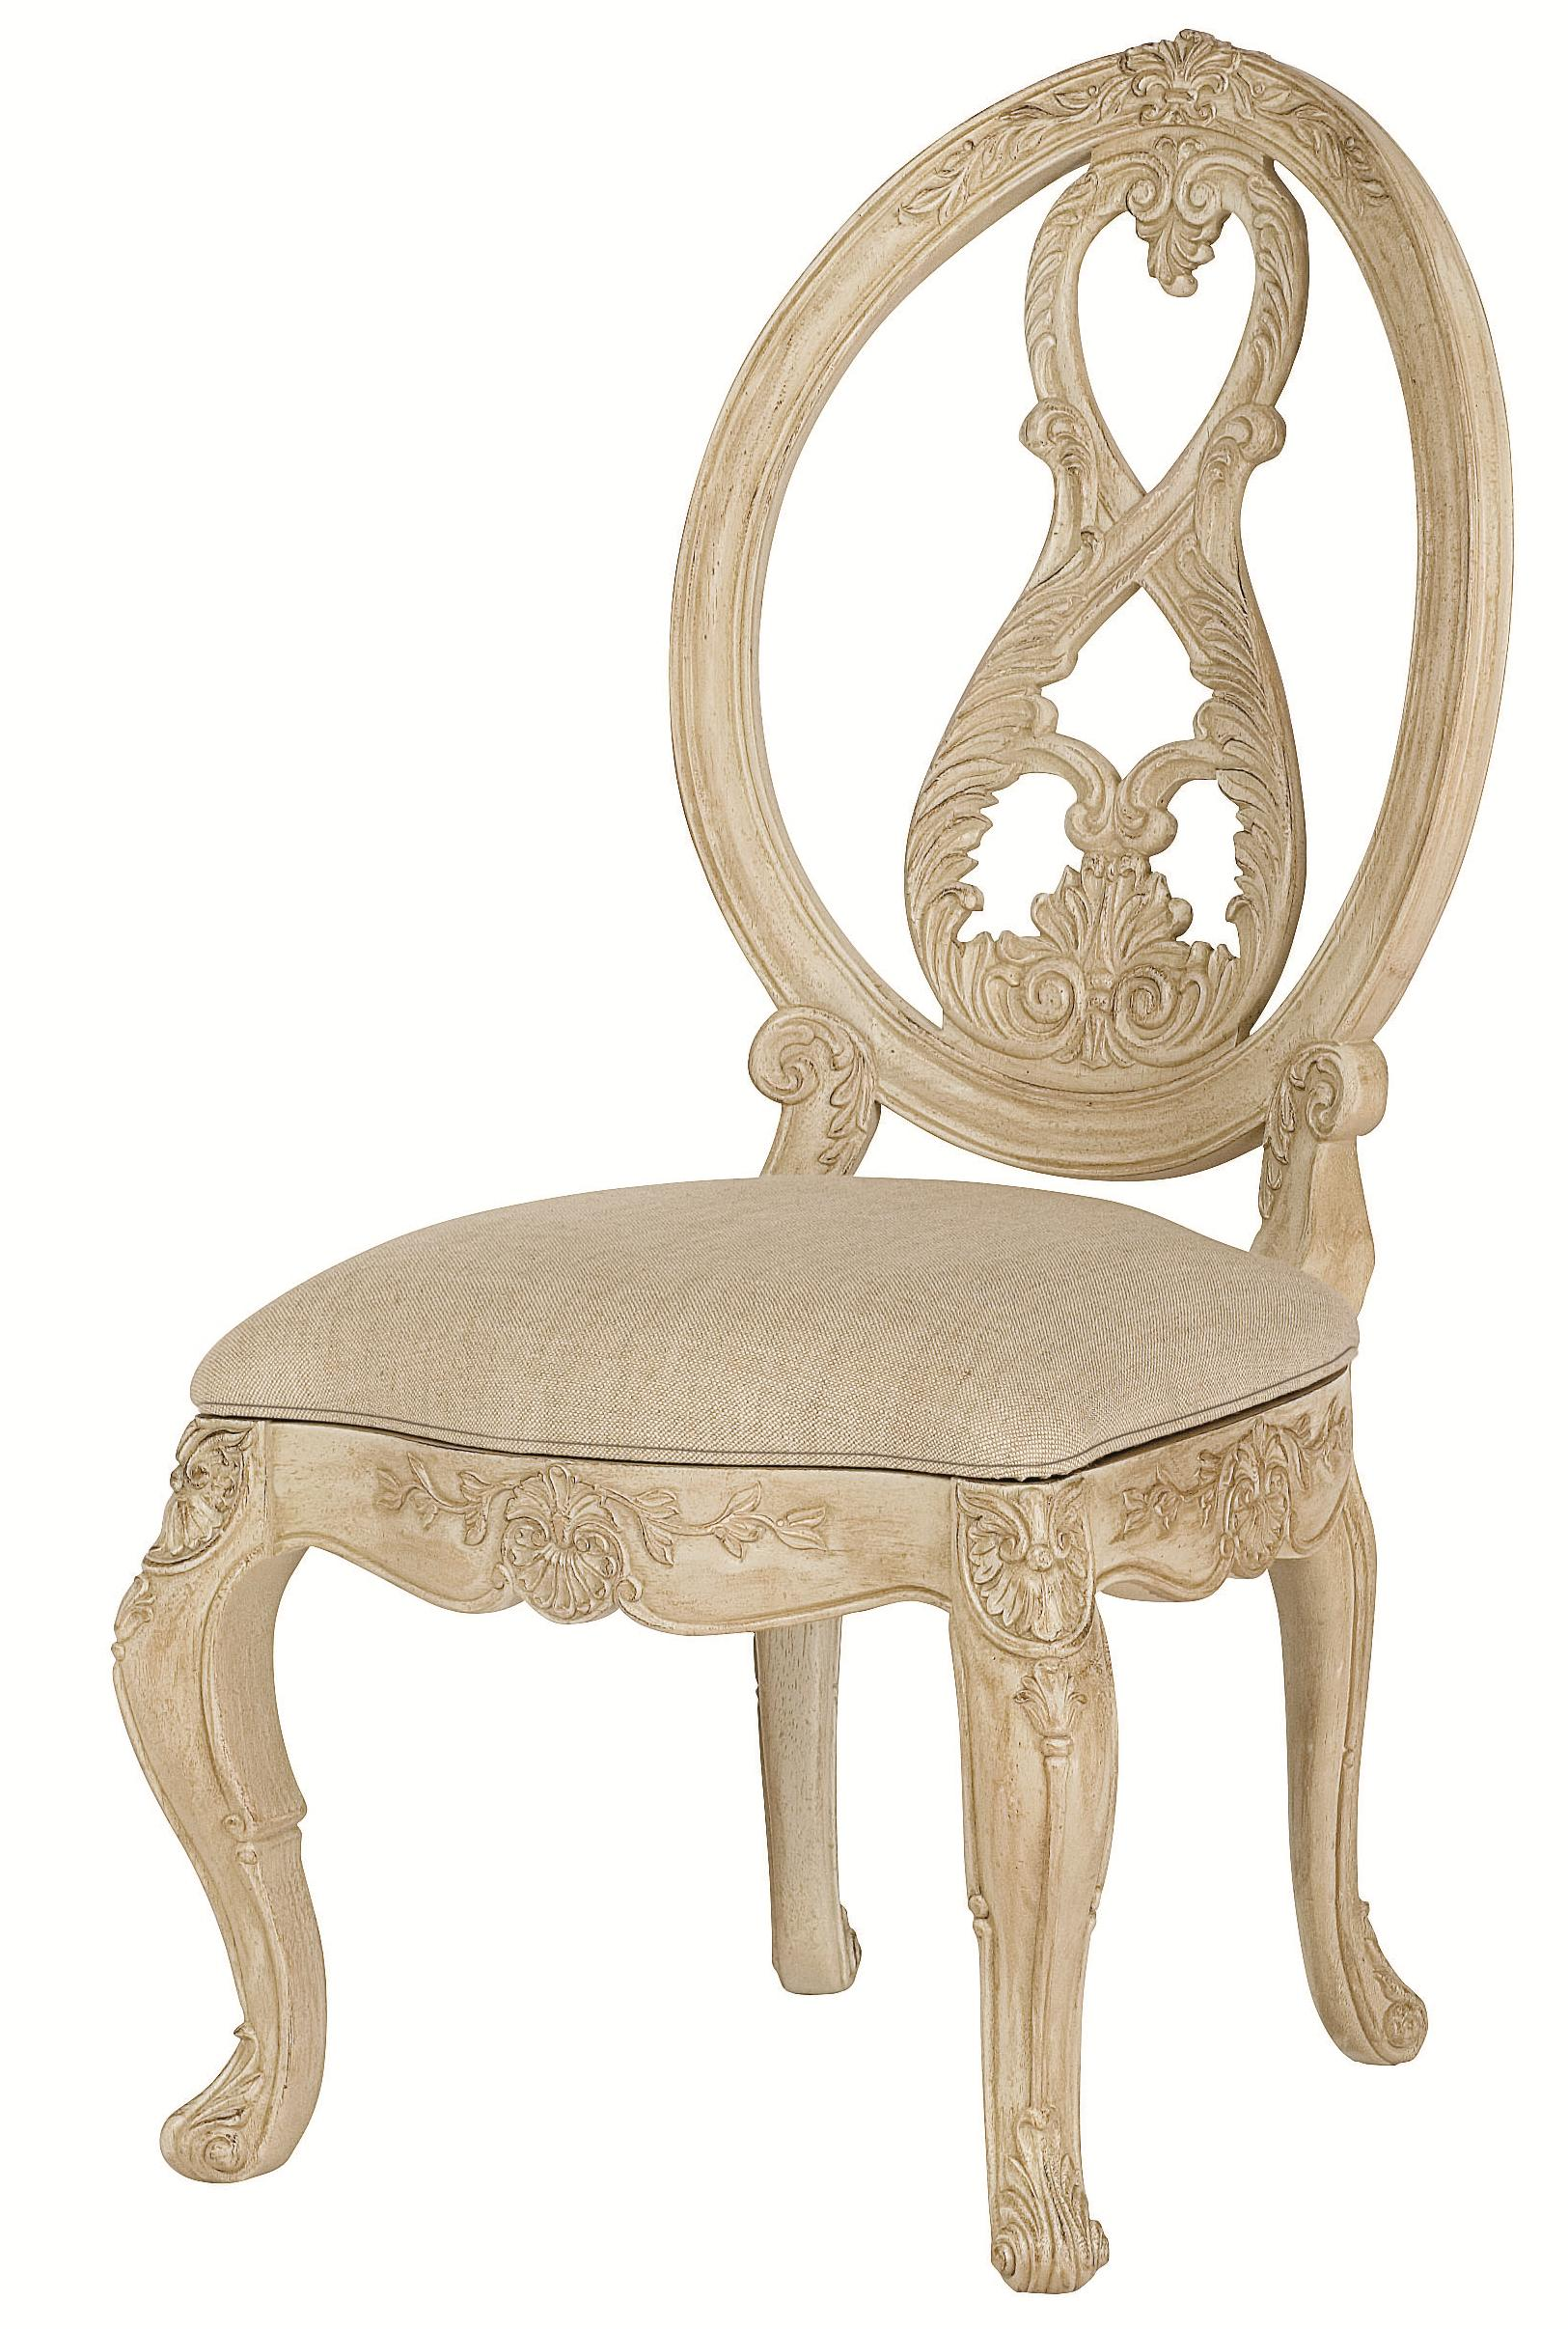 Attractive Oval Back Side Chair #13 - Splat Oval Back Side Chair With Scroll Legs